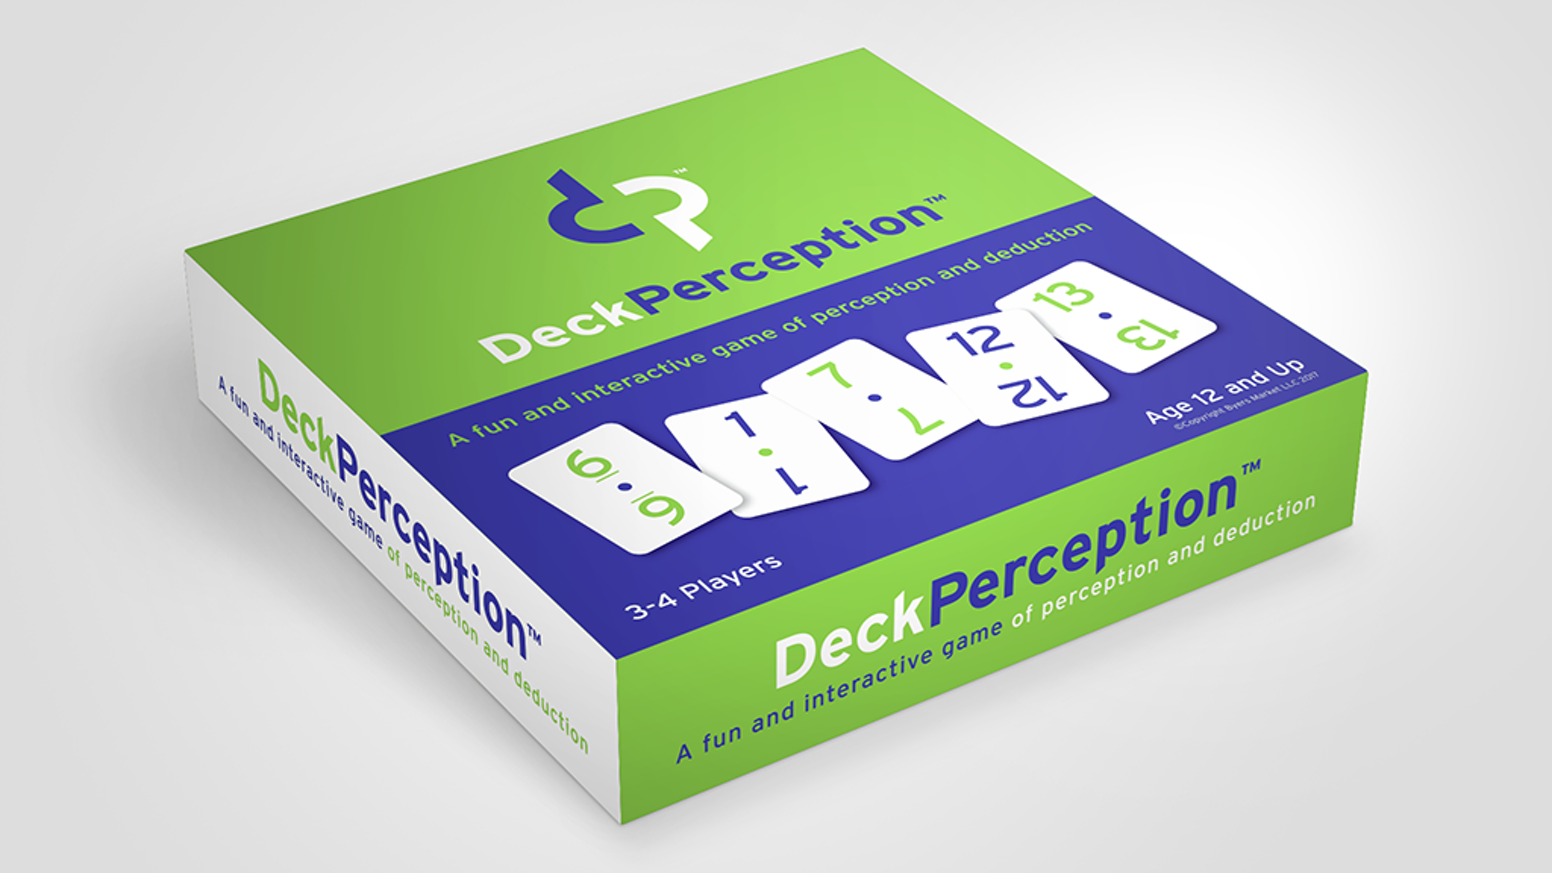 DeckPerception - A Fun and Interactive Tabletop Game by Byers Market